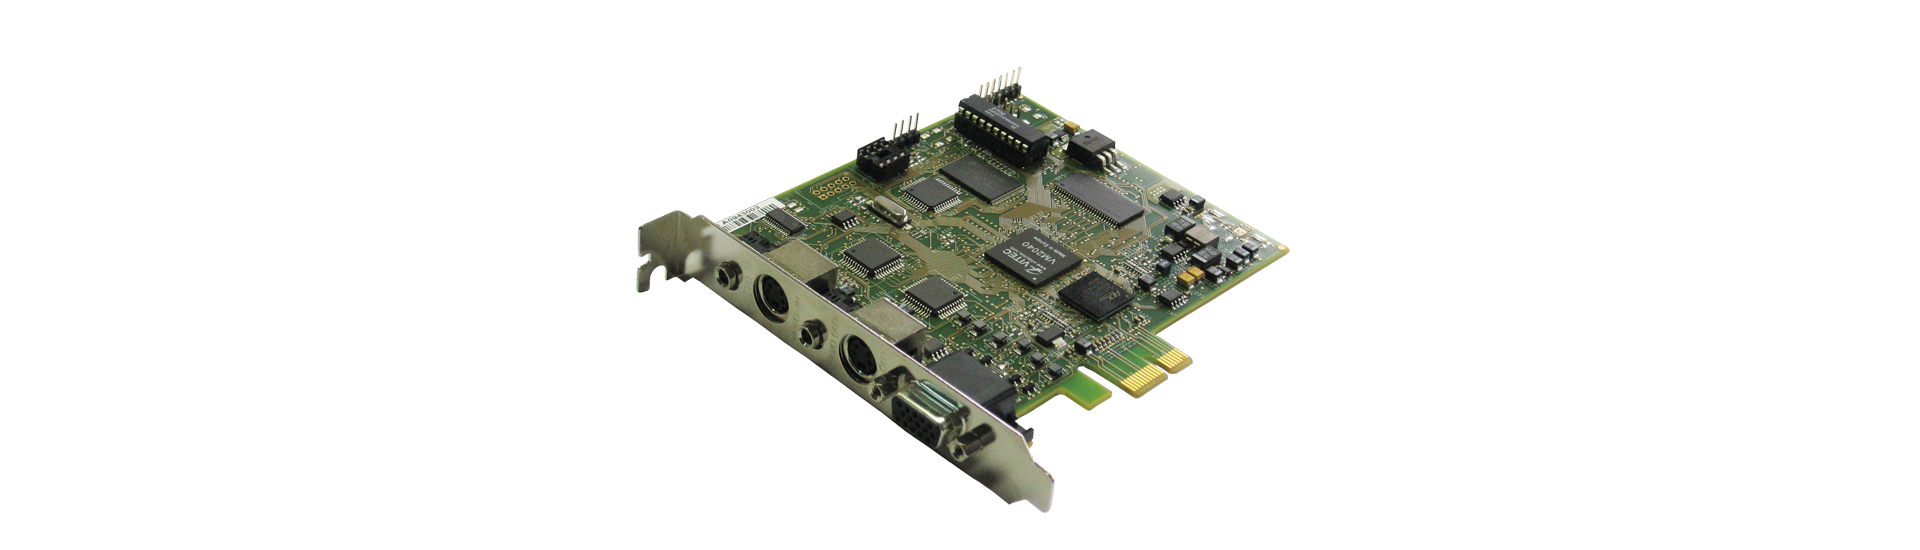 VITEC - VM4-2ex - PCIe (1 lane) capture and compression board